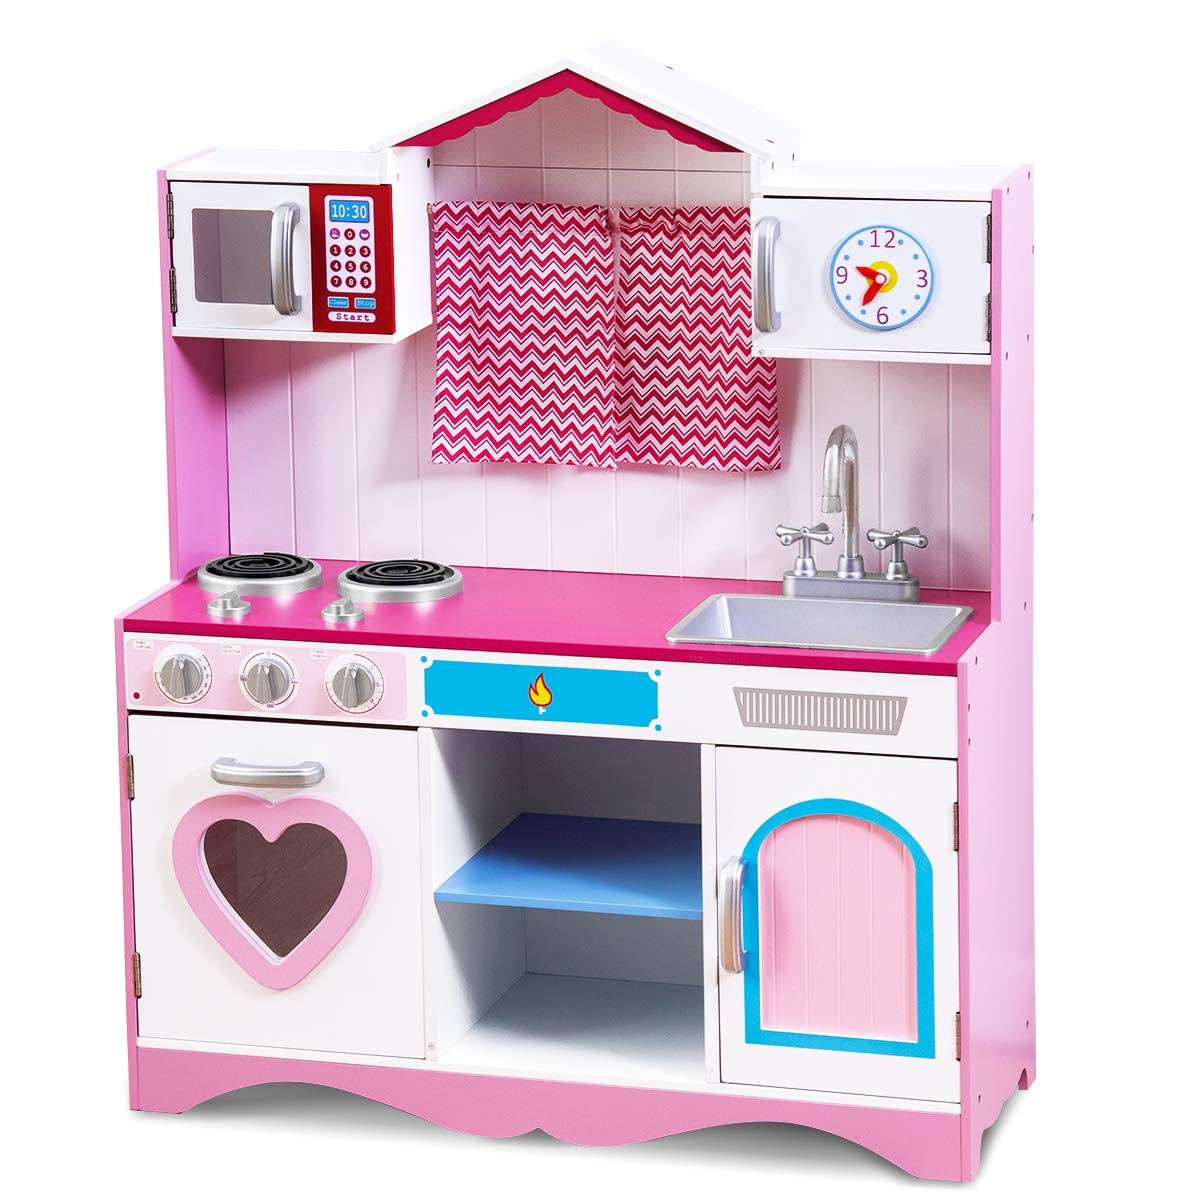 Costzon Play Kitchen Set, Wooden Toy Kitchen for Chef's Pretend Cooking Play, Deluxe Toddler Kitchen w/ Four Lovely Locker, Mini Simulation Faucet, Washing Pool, Simulation Kitchen, for Kids, Girls